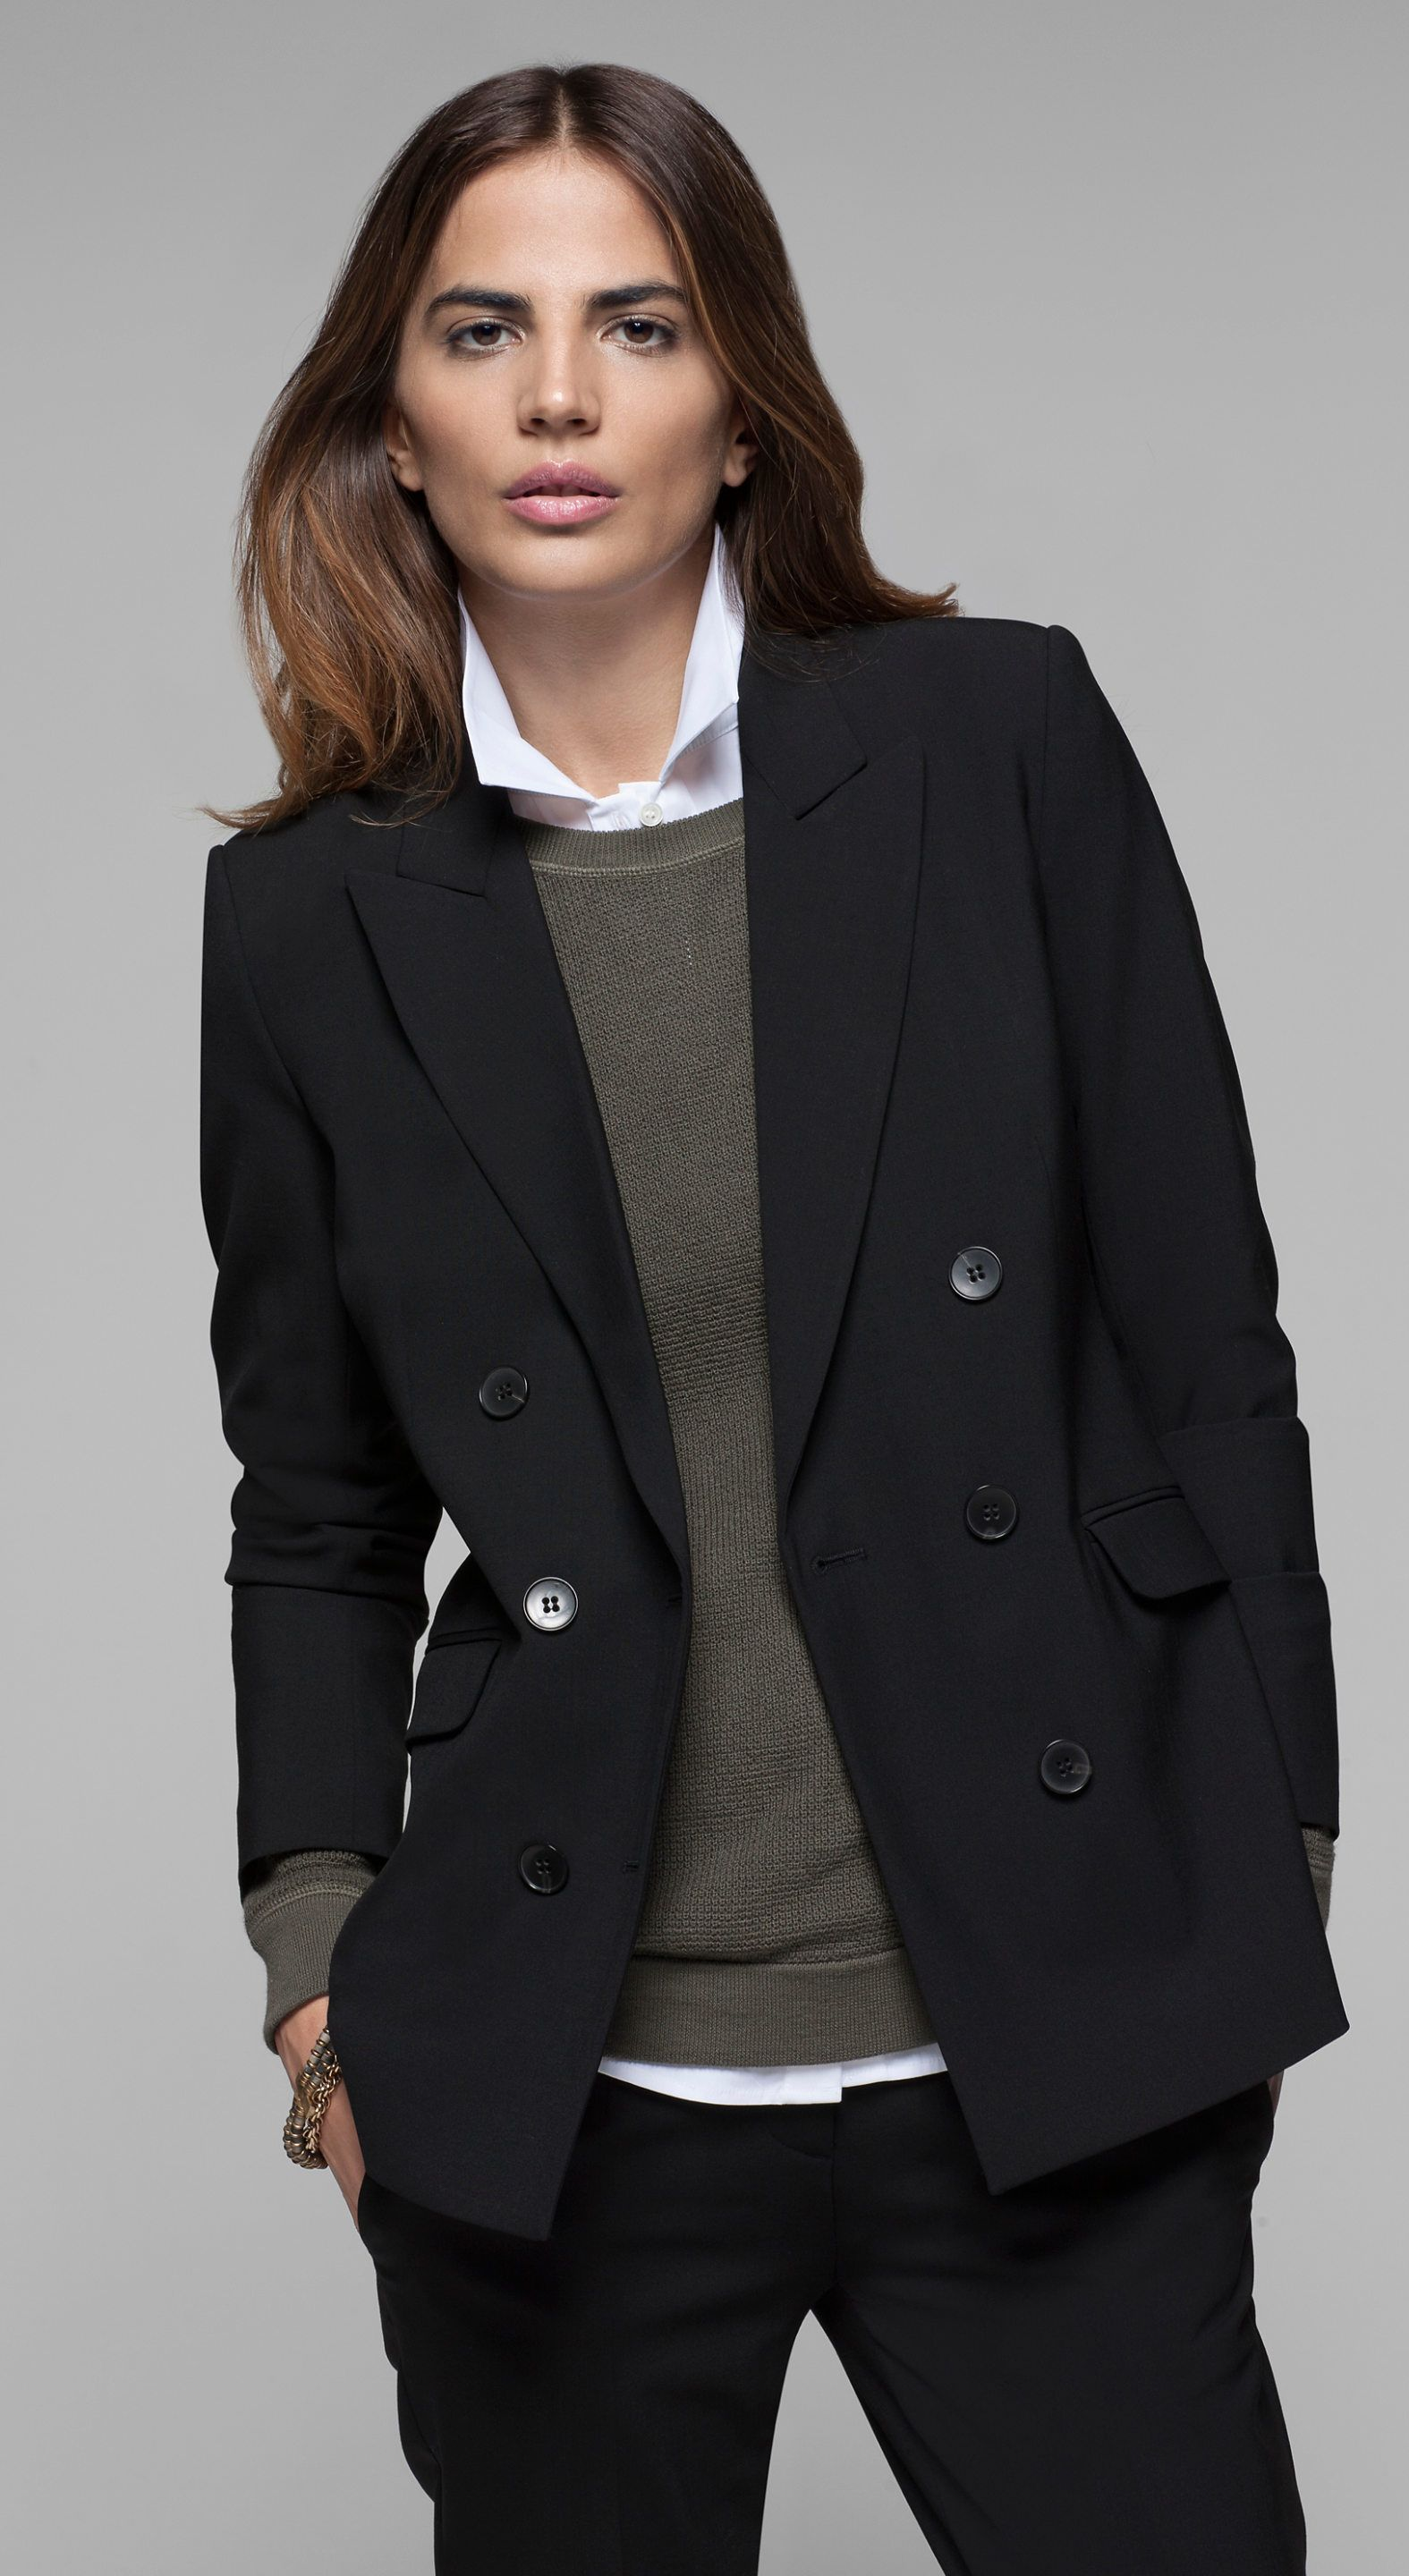 Tomboy I 39 D Like This For The Office Things To Wear Pinterest Tomboy Clothes And Androgynous